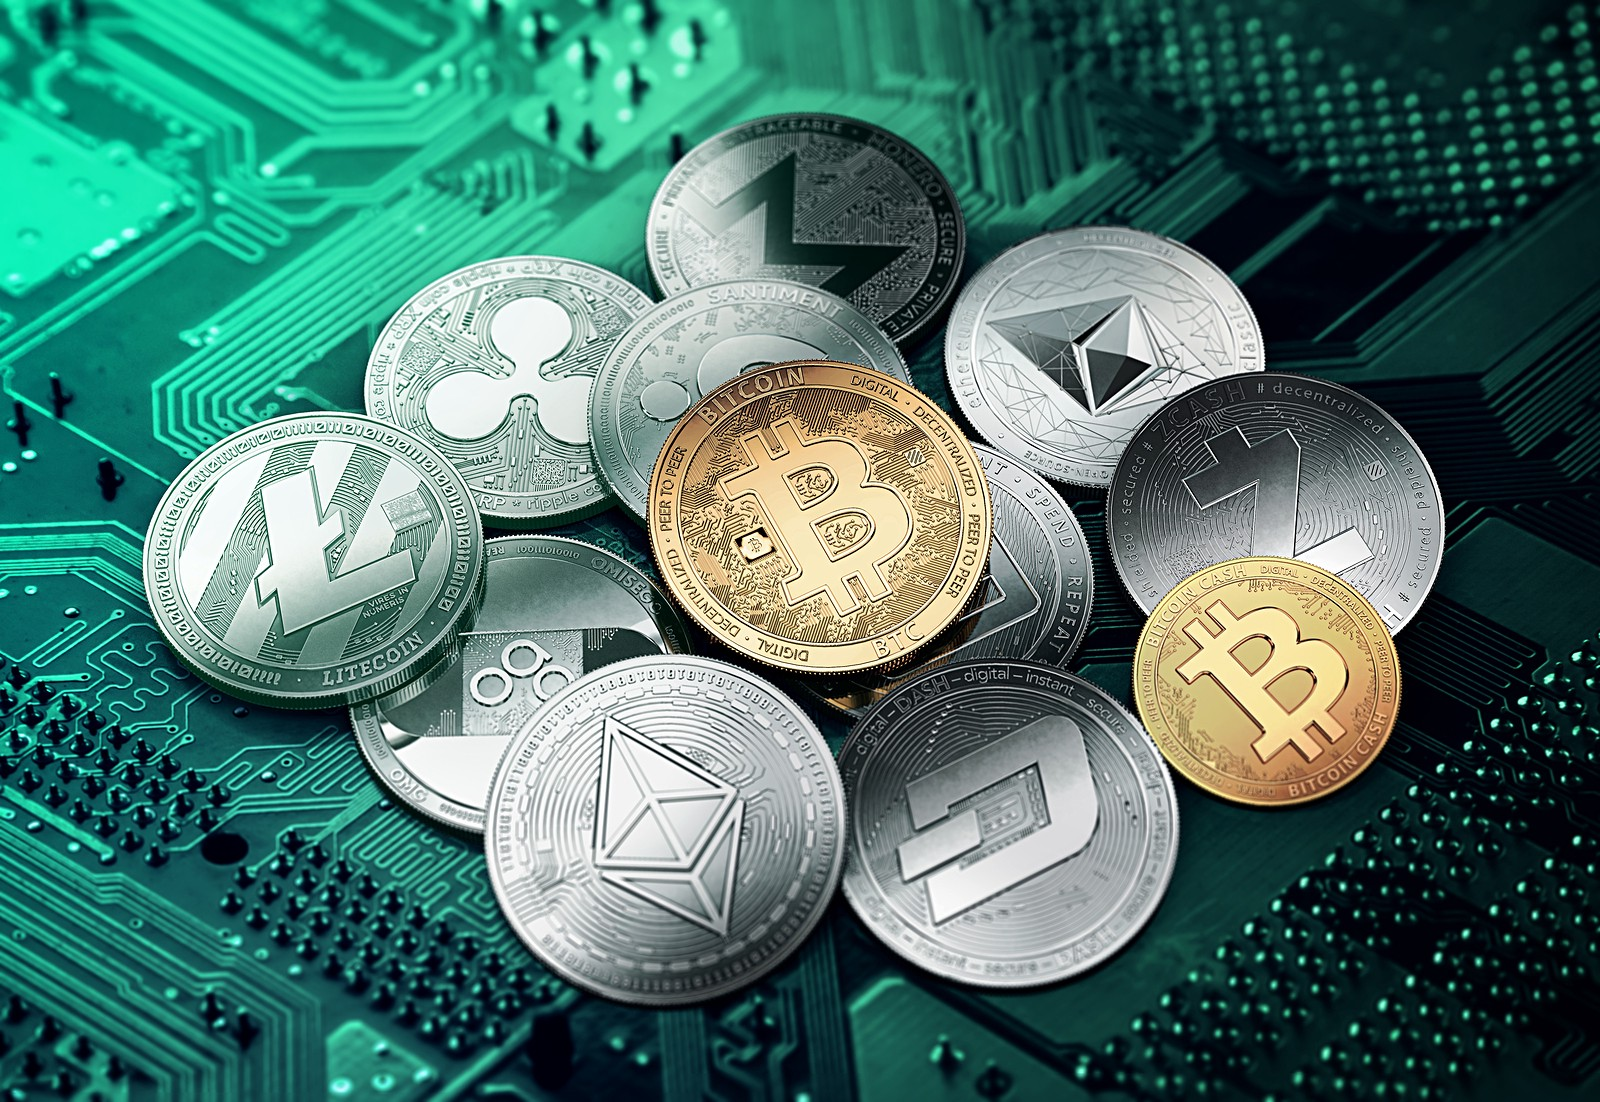 How To Find The Best Cryptocurrency